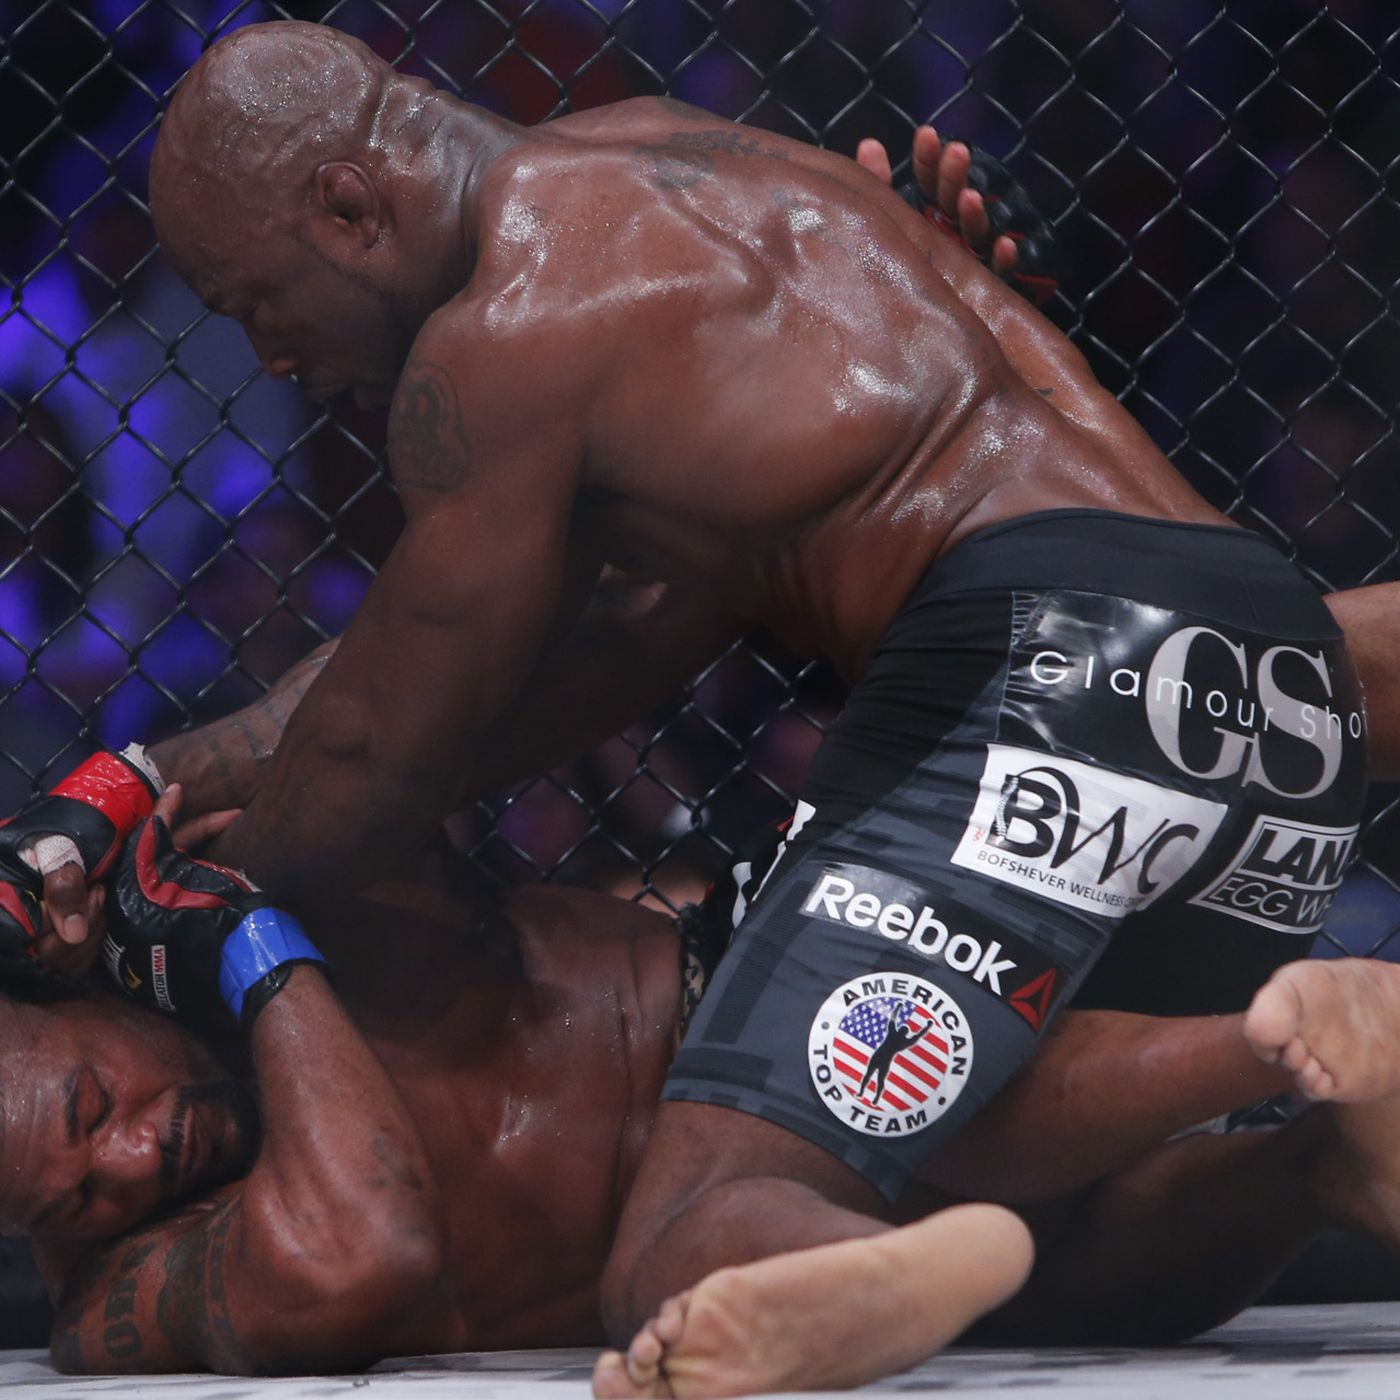 Mma fighters suck dick career Bellator 120 In Tweets Pros React To Rampage Jackson Vs King Mo Lawal Will Brooks Vs Michael Chandler More Mma Fighting